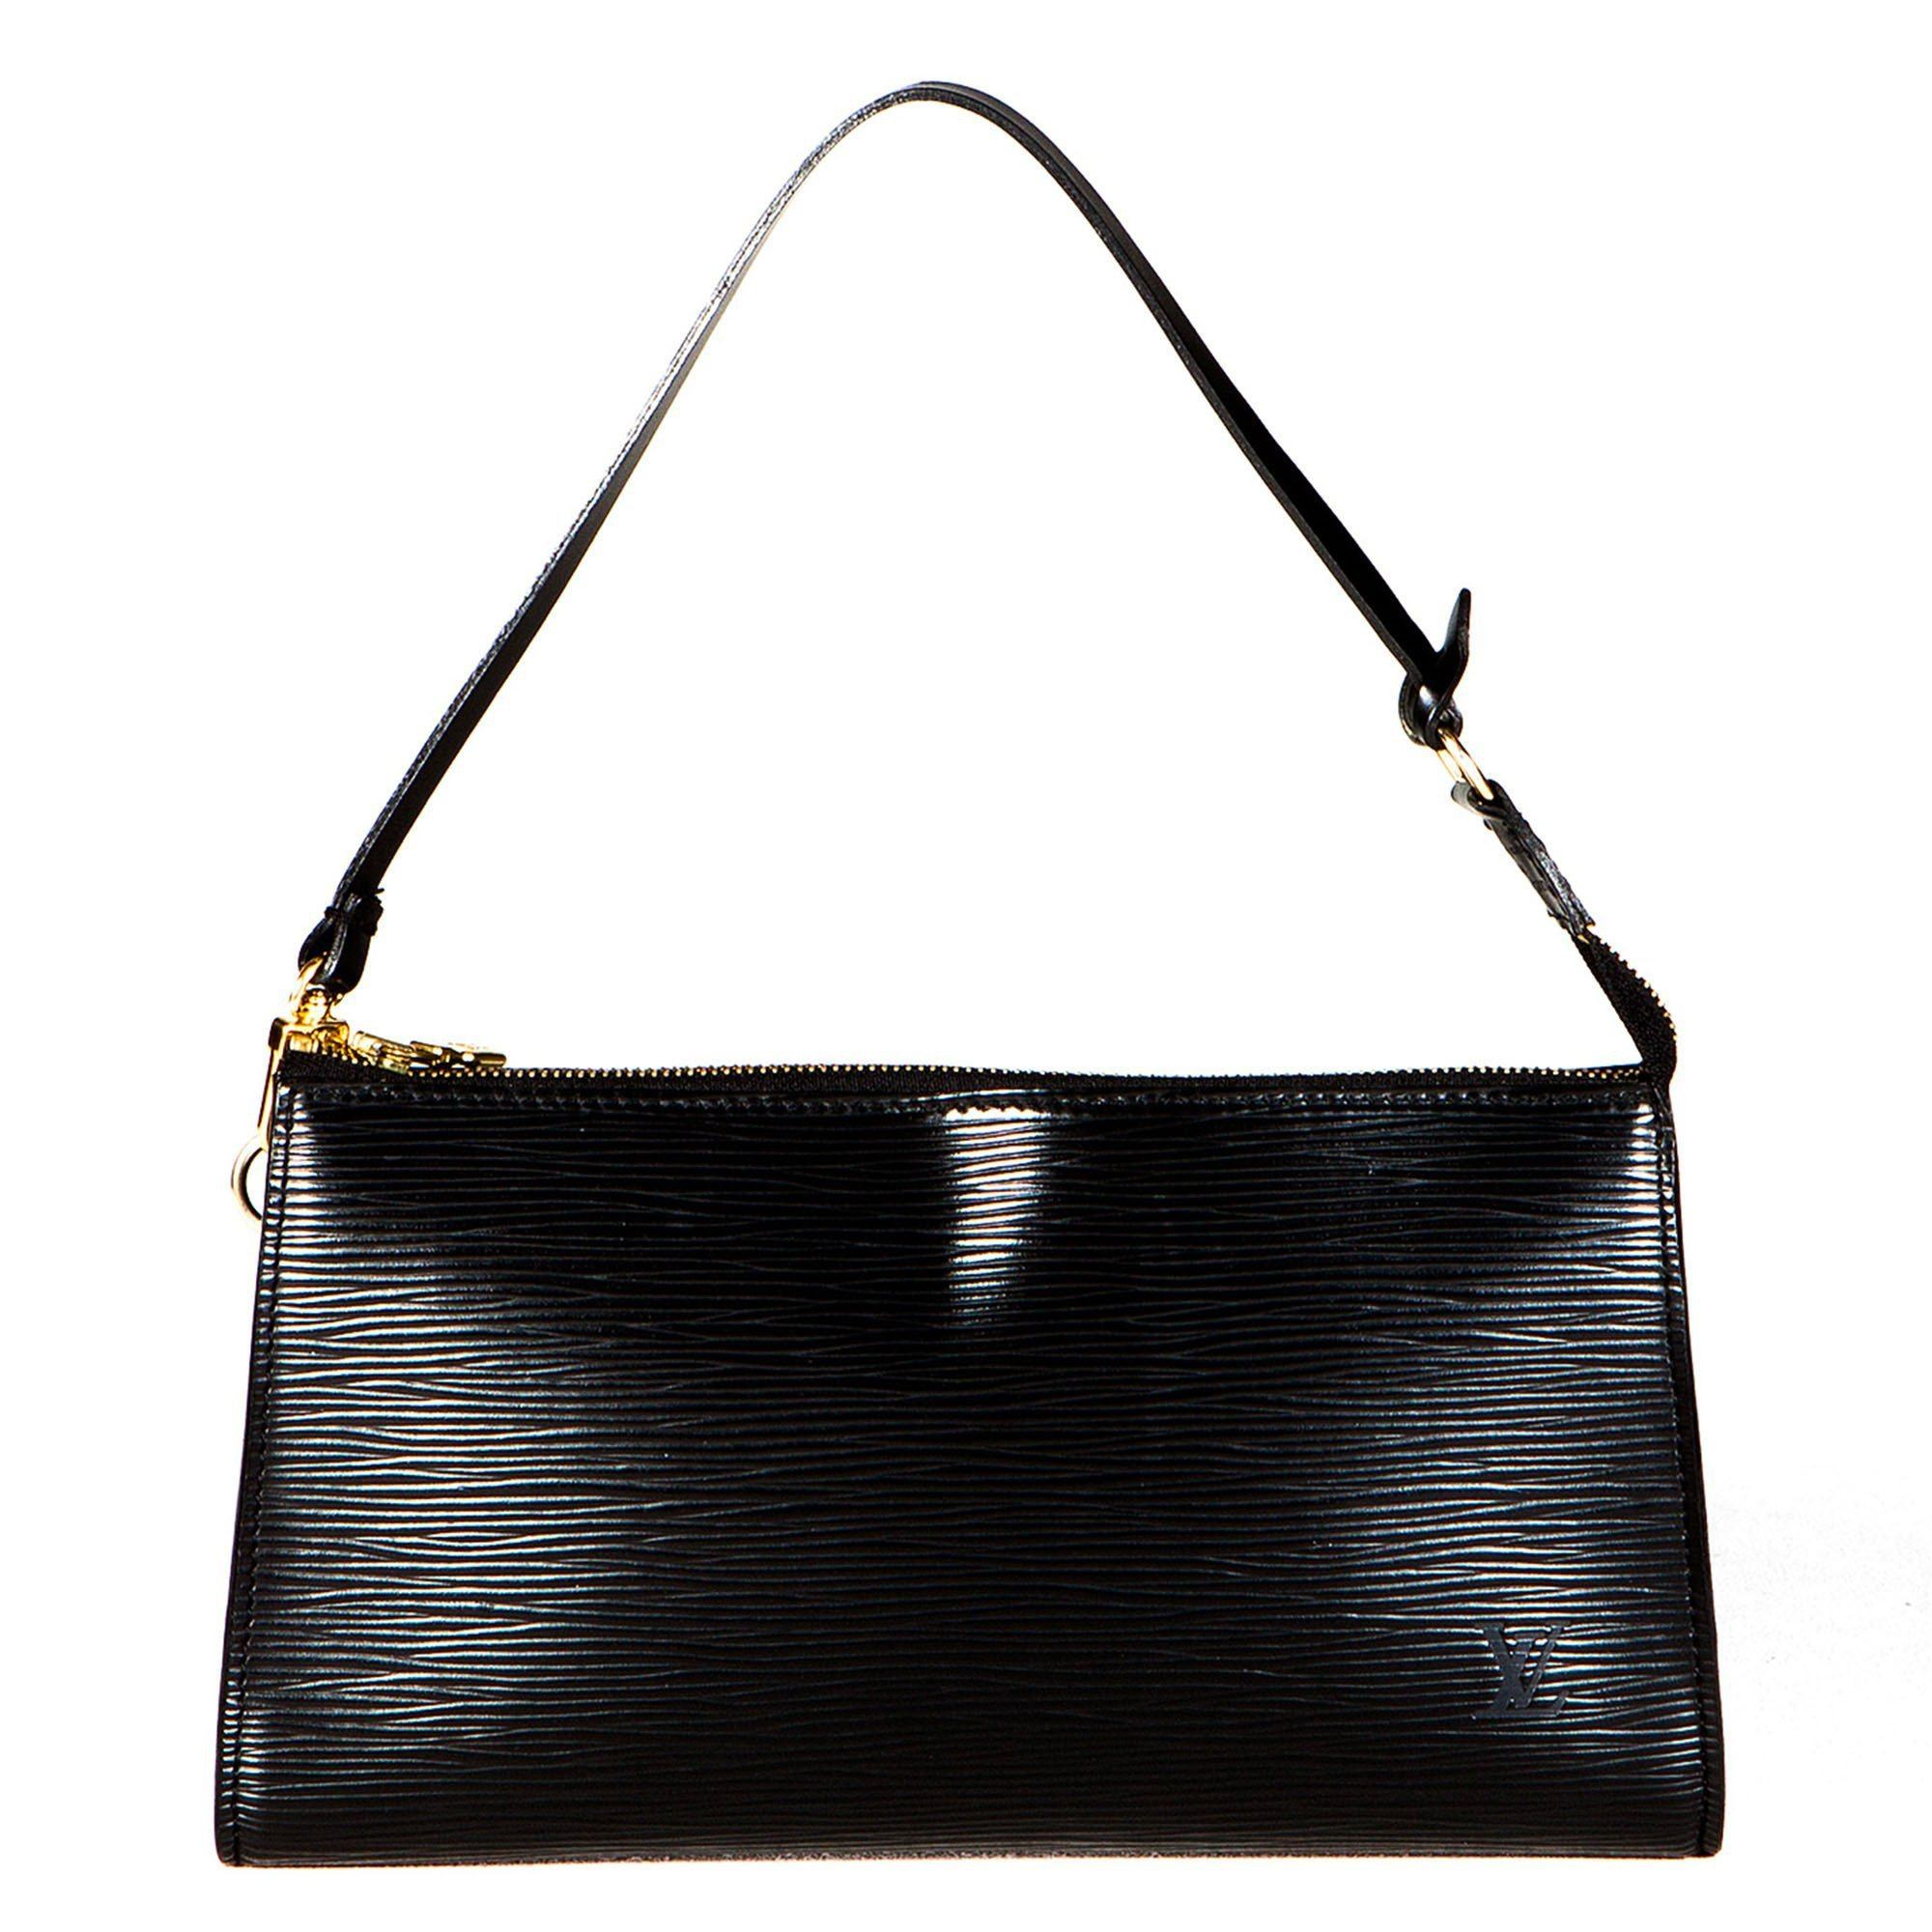 Louis Vuitton Black Epi Leather Pochette